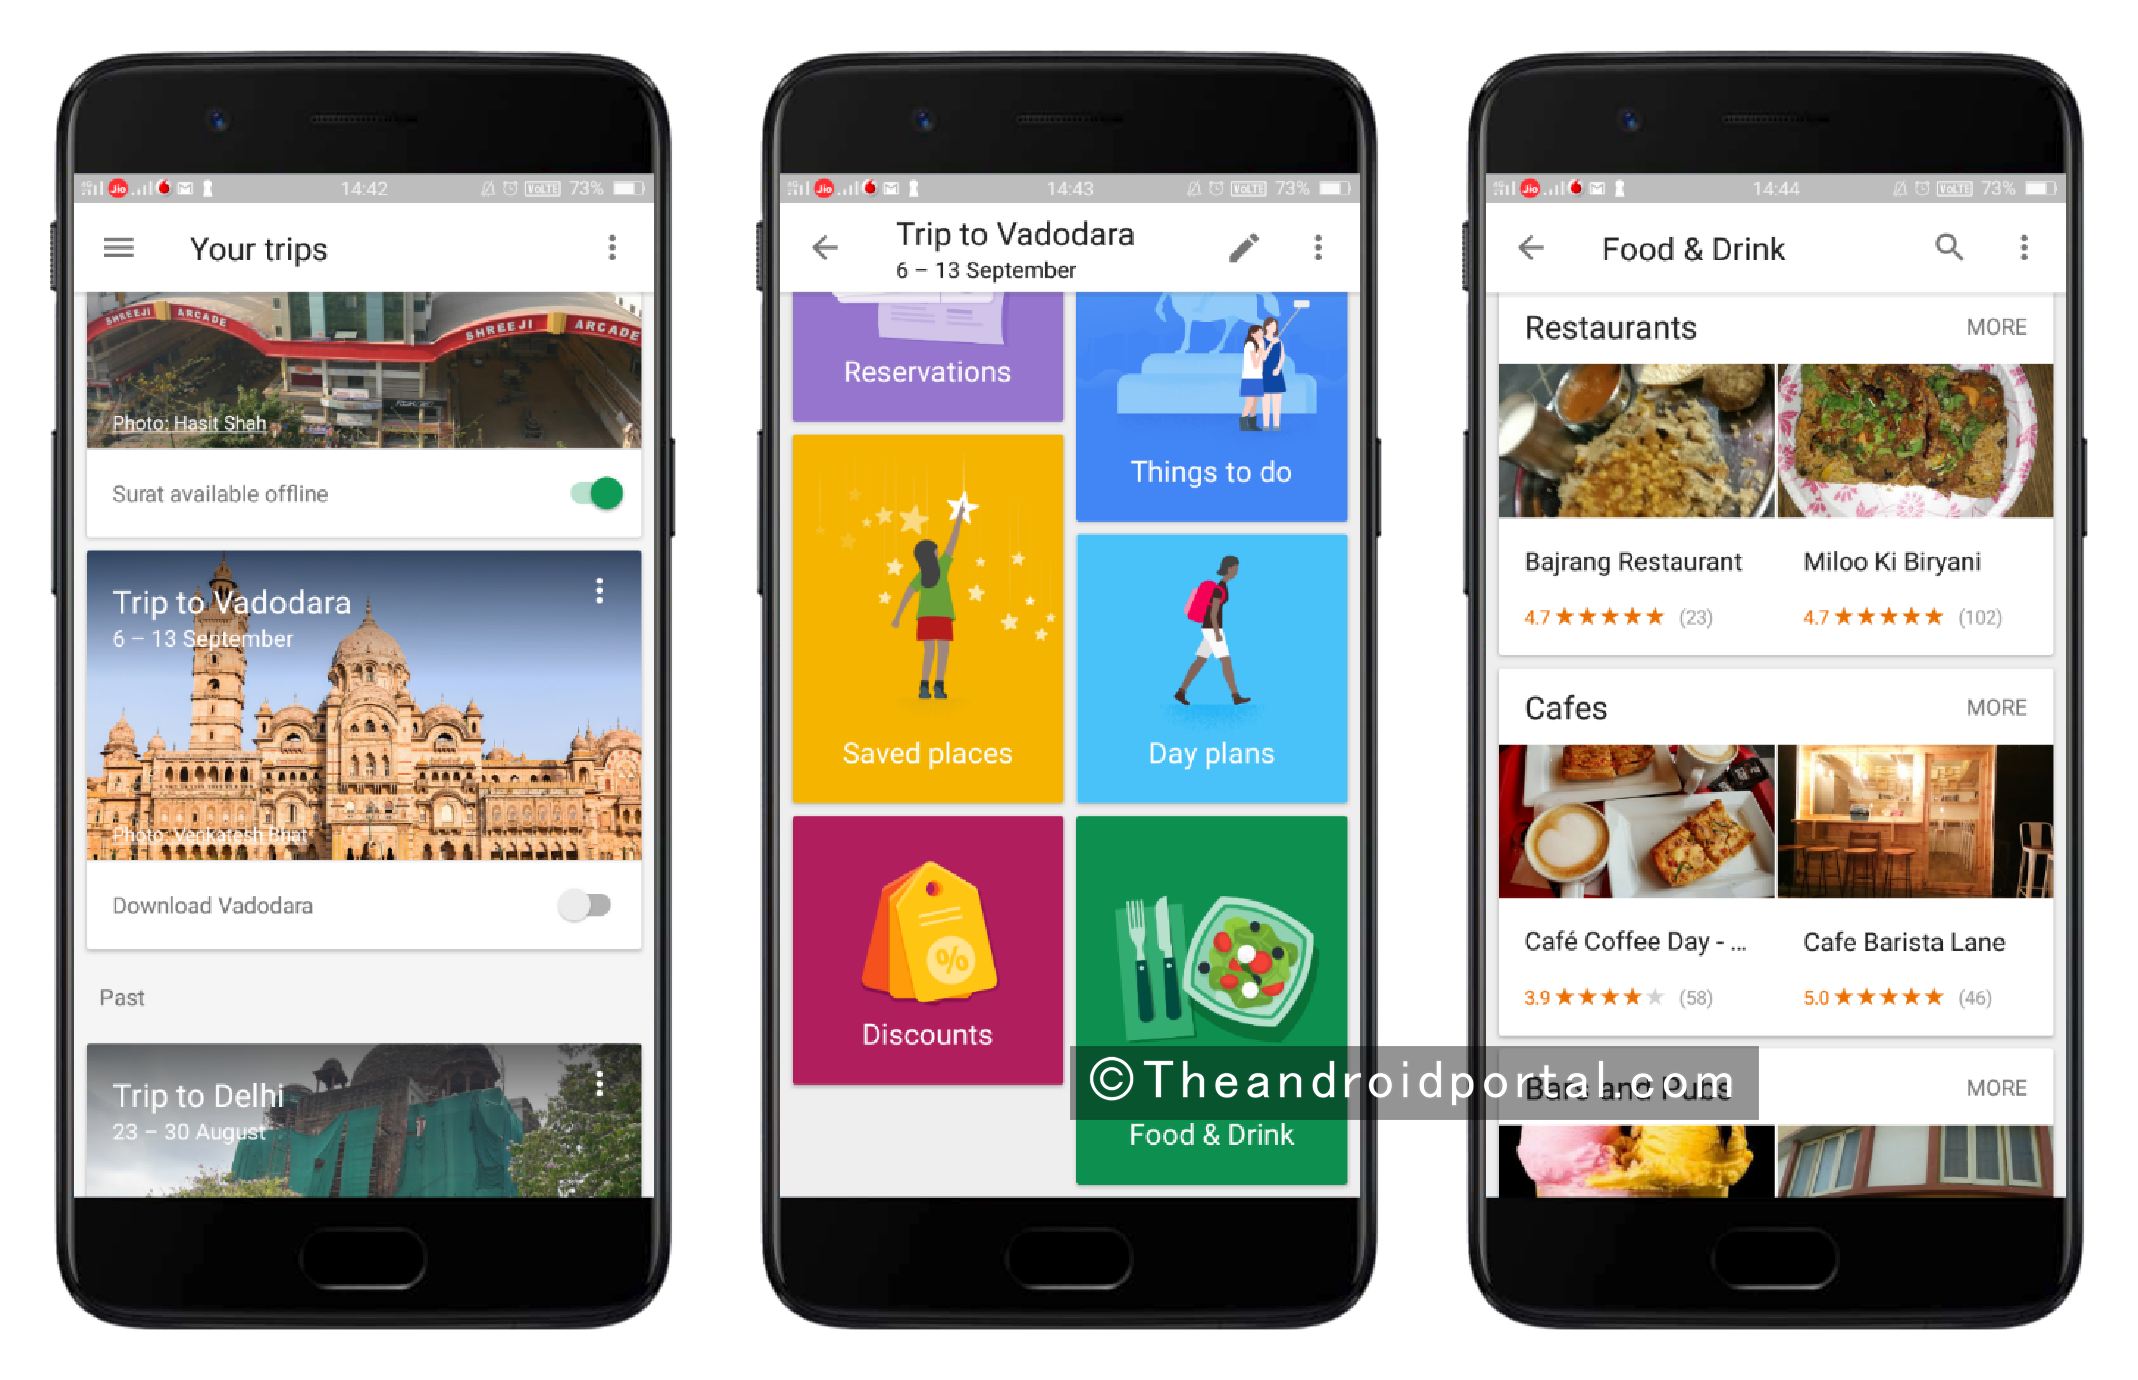 Find Best Food and Drinks near the Destination - theandroidportal.com